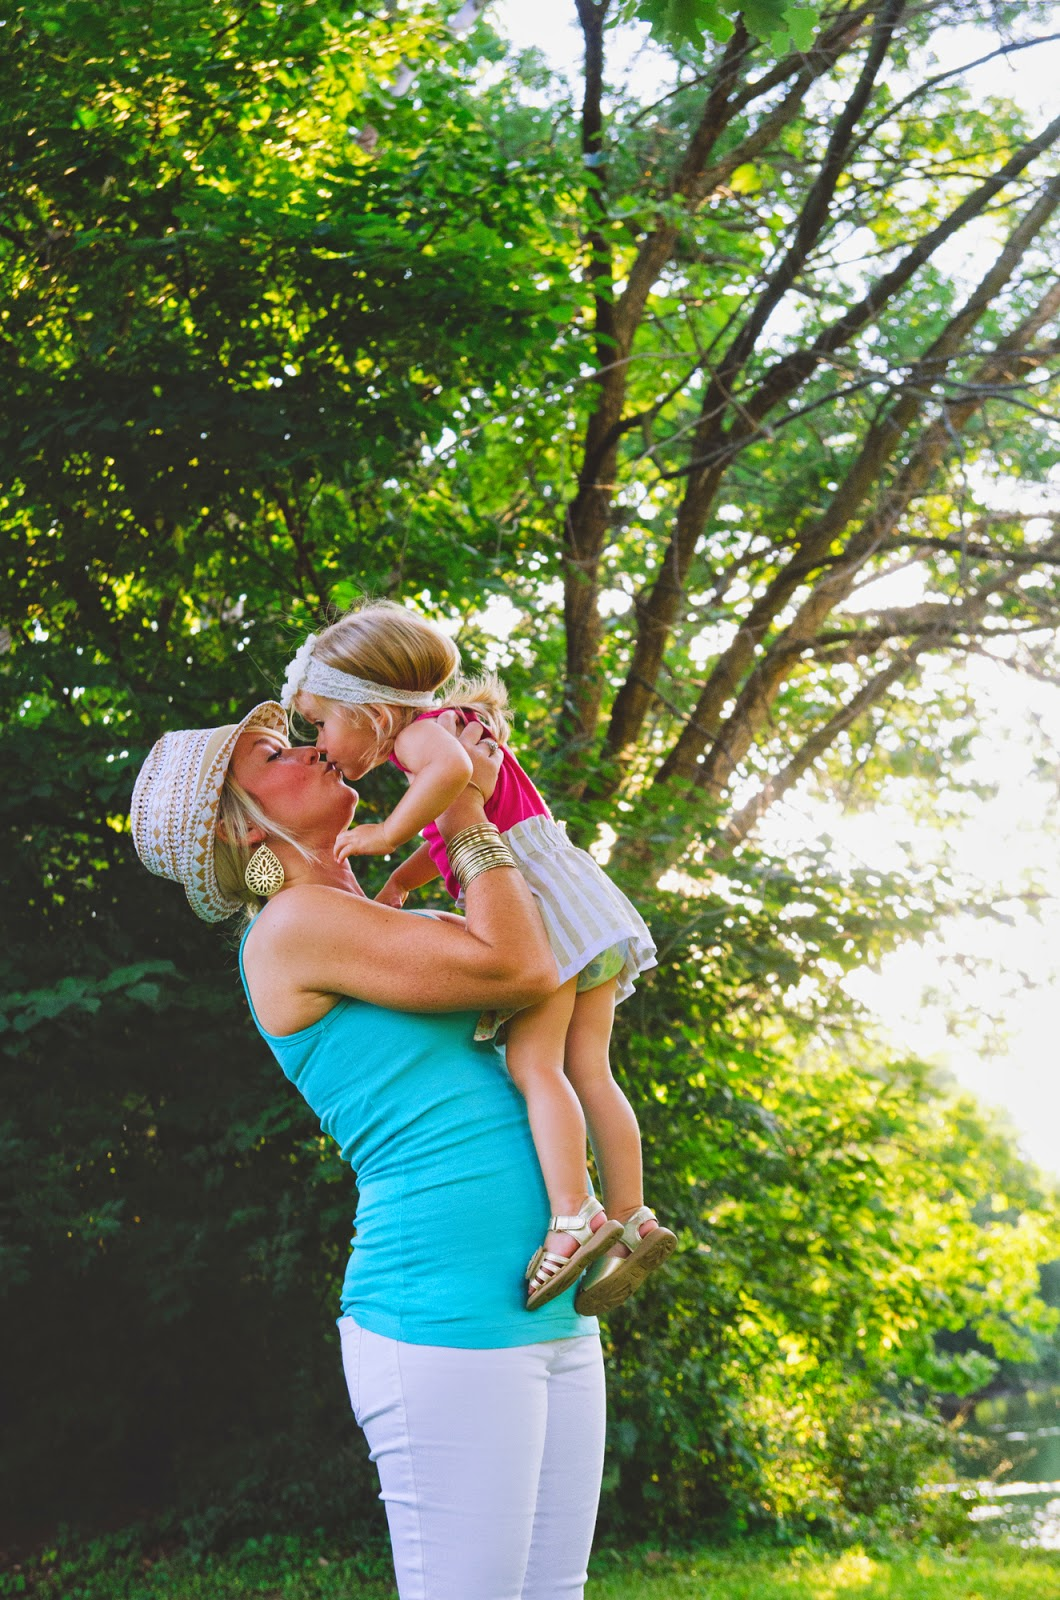 One of the best indianapolis family photographers captures mom and baby kisses